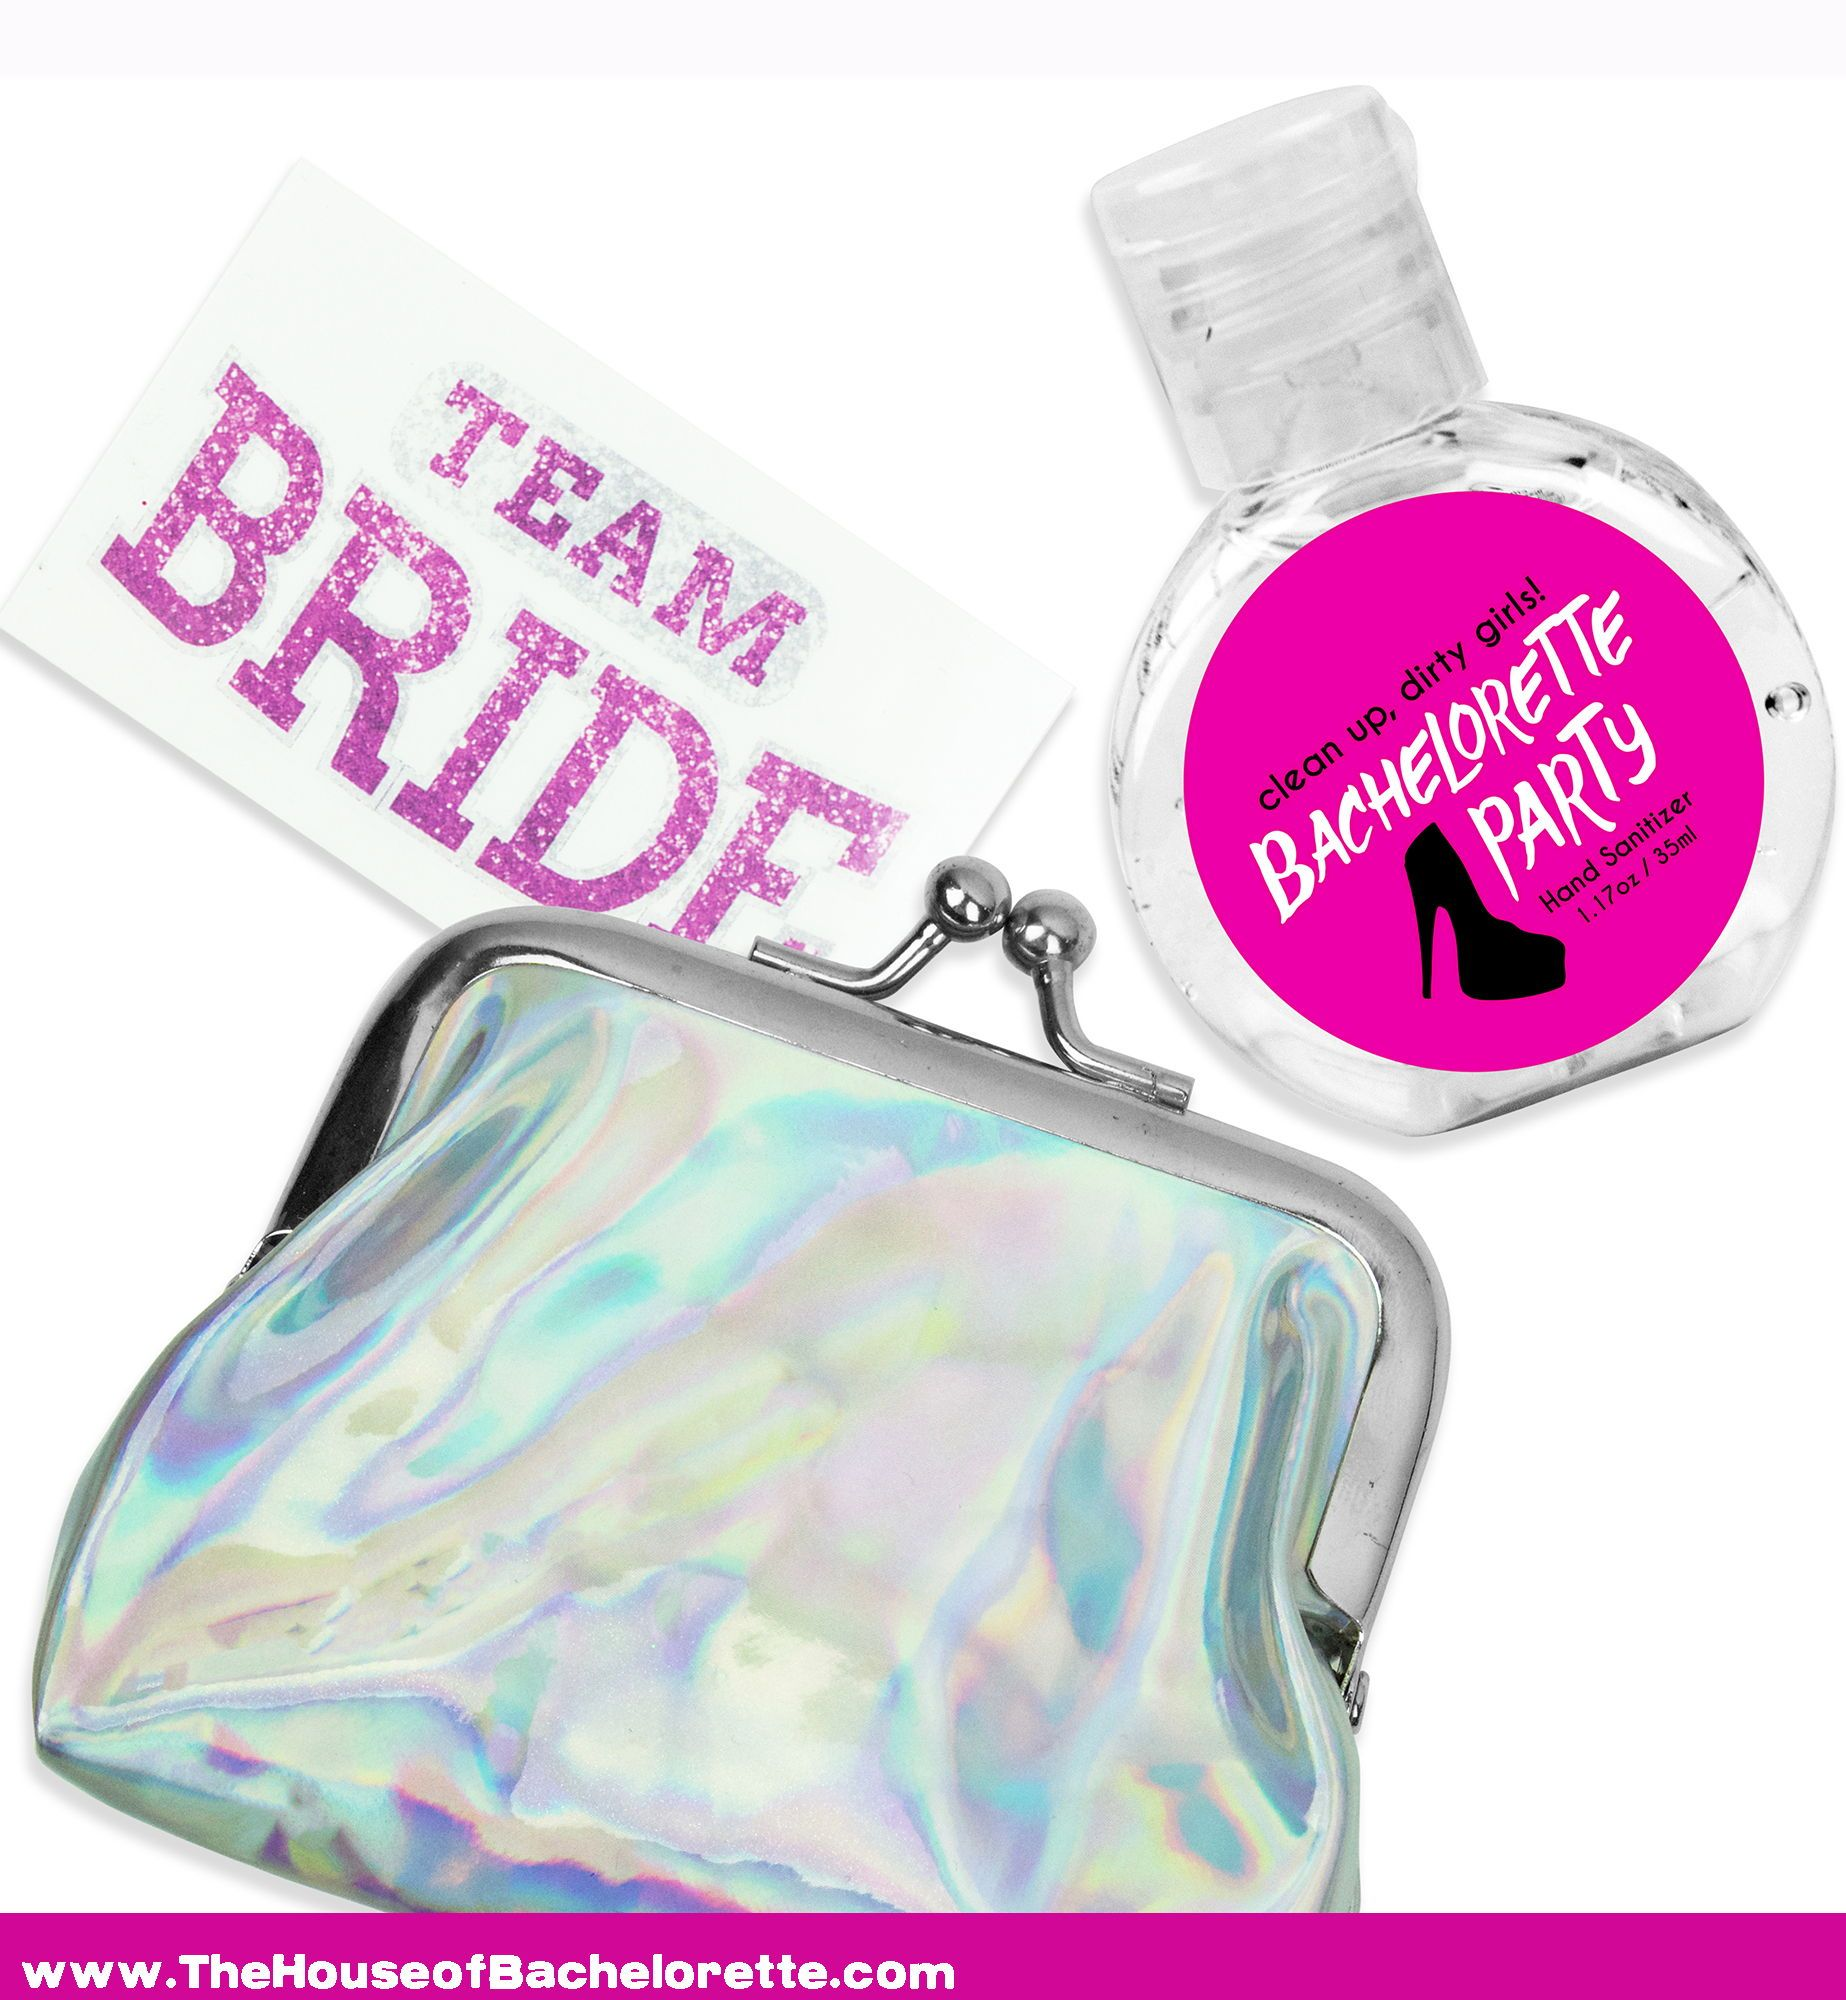 Bachelorette Party Silver Favor Kit Fun Bachelorette Party